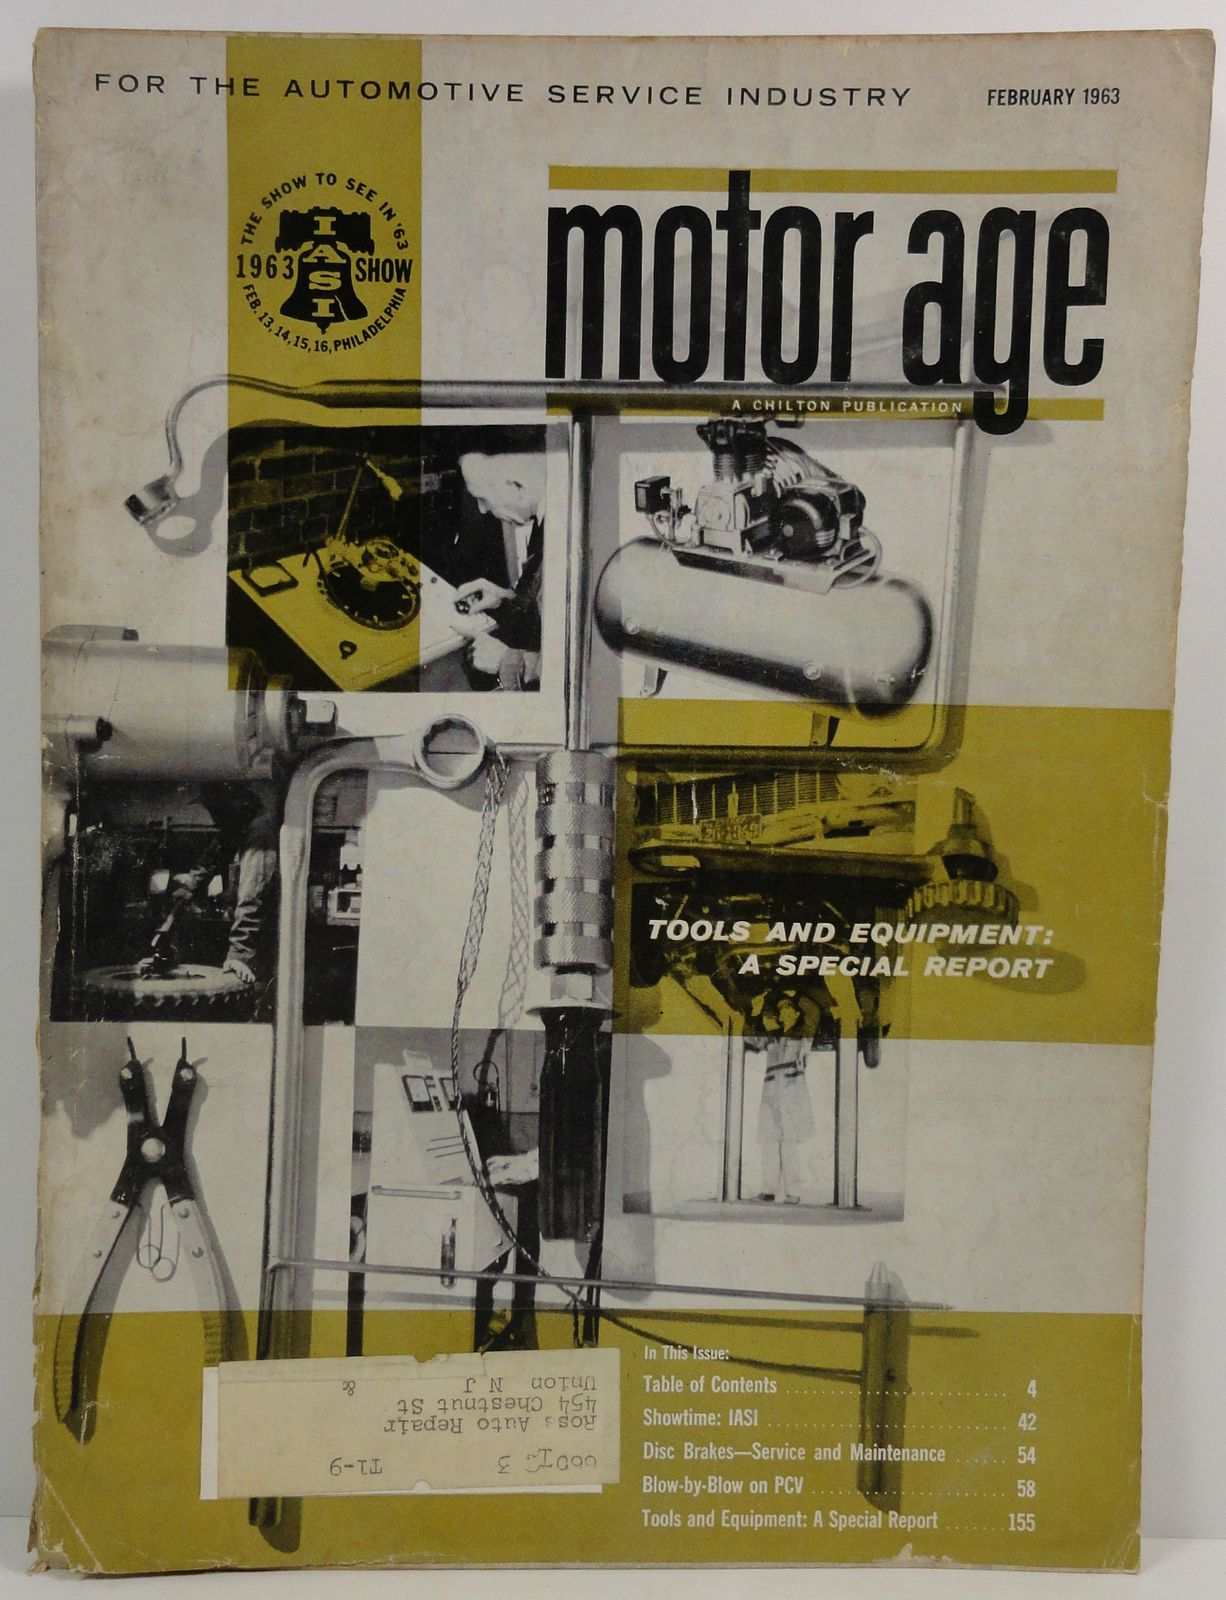 Motor Age February 1963 A Chilton Publication Tools and Equipment